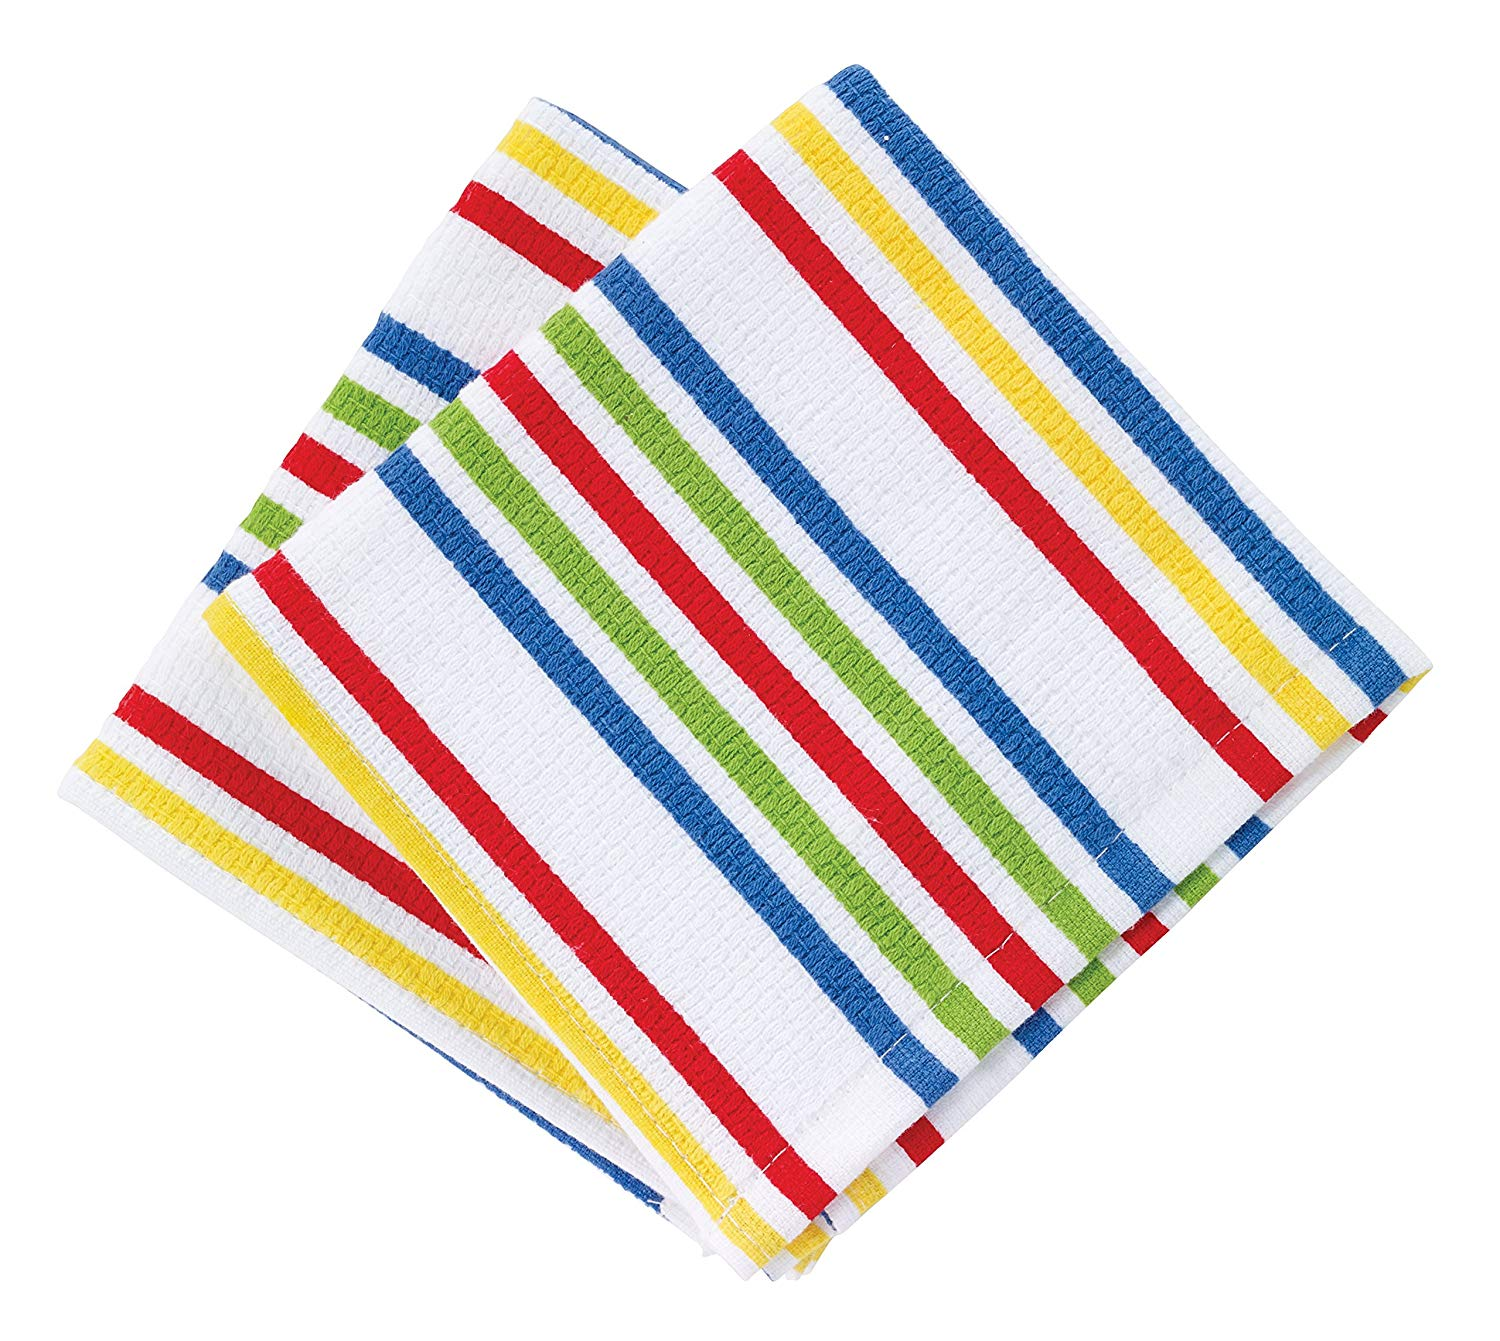 "T-fal Textiles Highly Absorbent 100% Cotton Double Sided Printed Dish Cloths, 12"" x 12"", Set of 2, Striped Red/Multi Pattern"